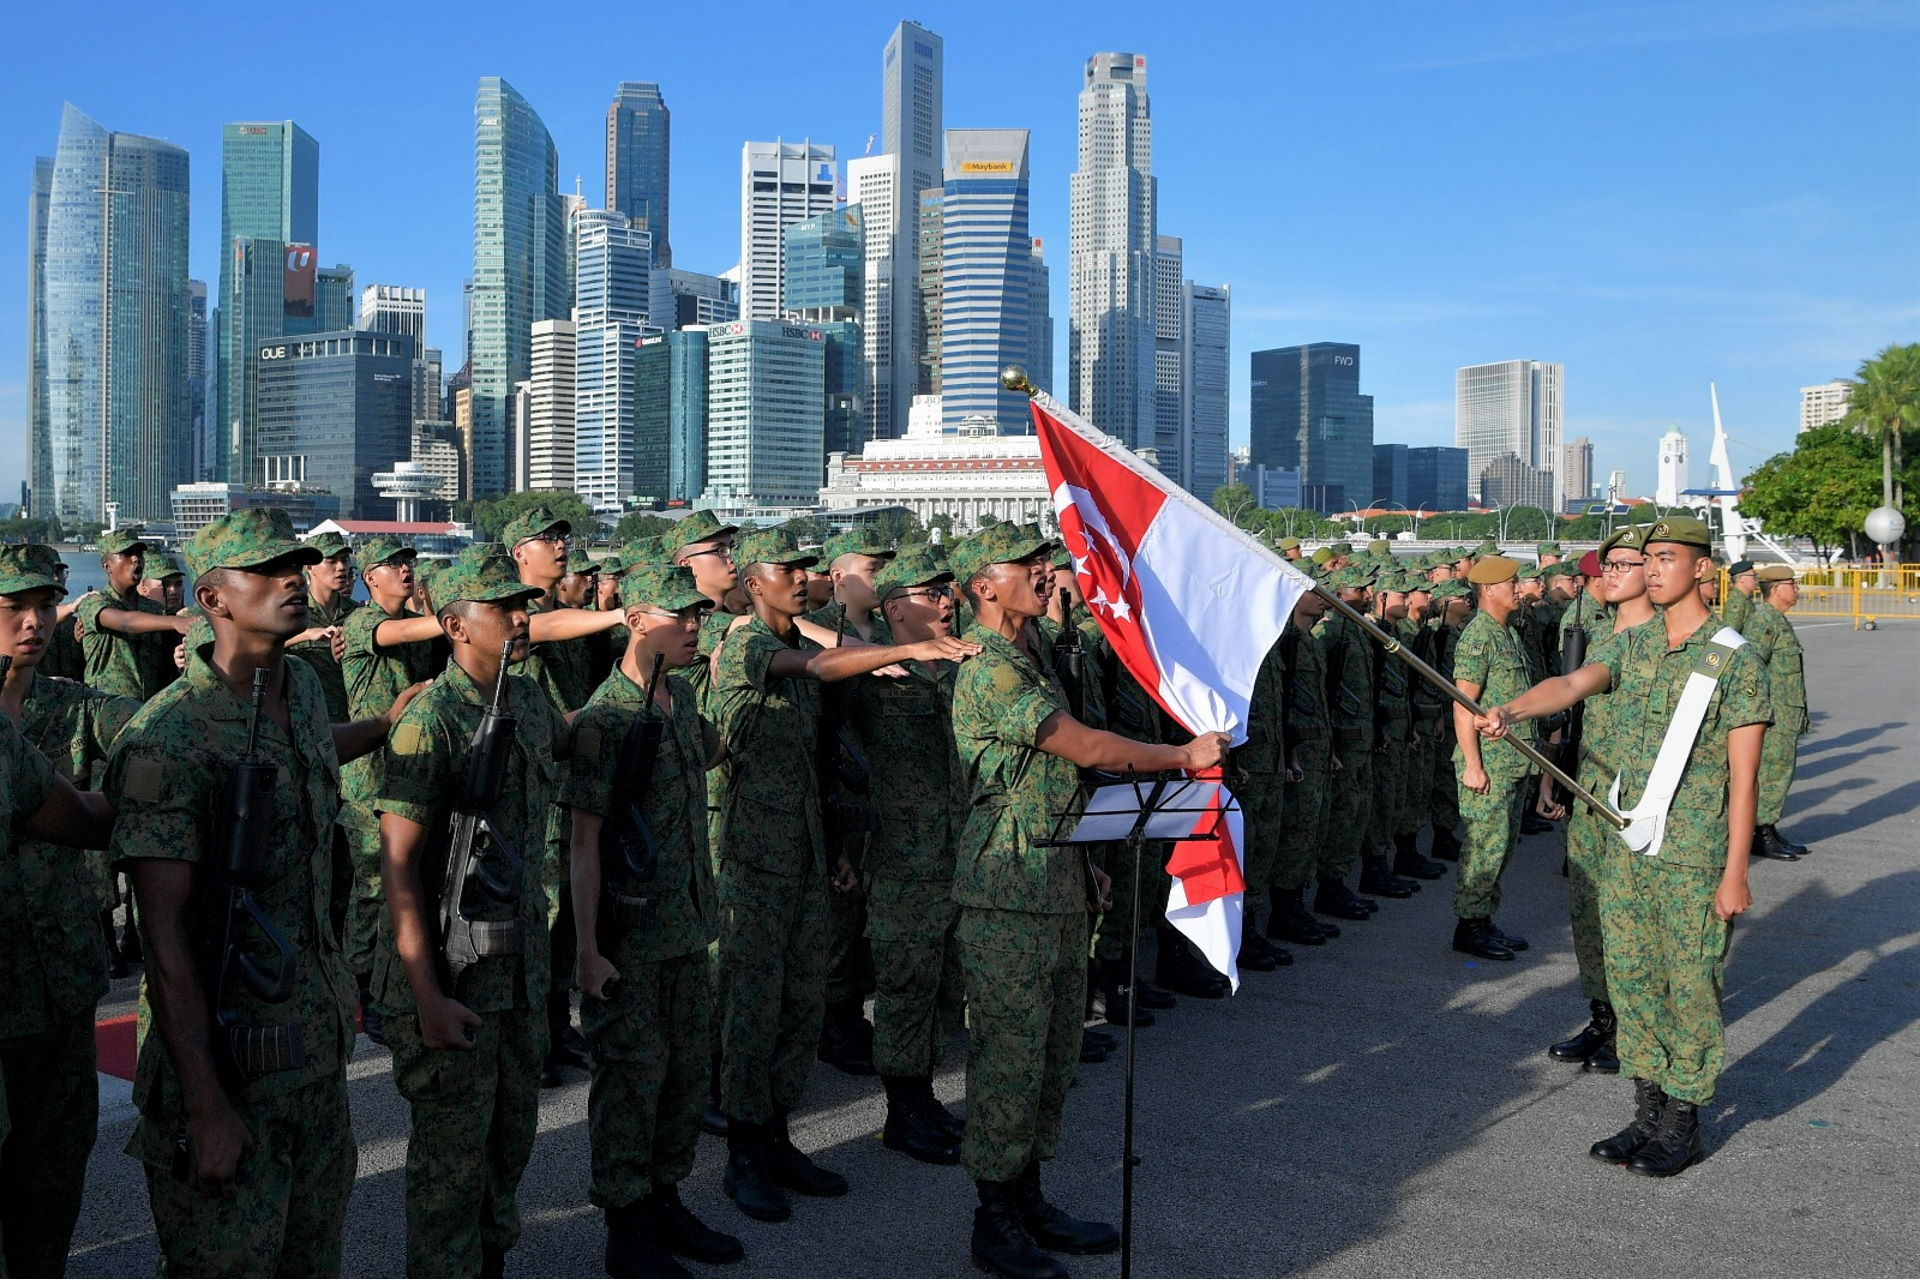 Recruits from the Basic Military Training Centre (BMTC) reciting the Weapon Creed at the Total Defence Day Commemoration Event at The Float @ Marina Bay this morning.